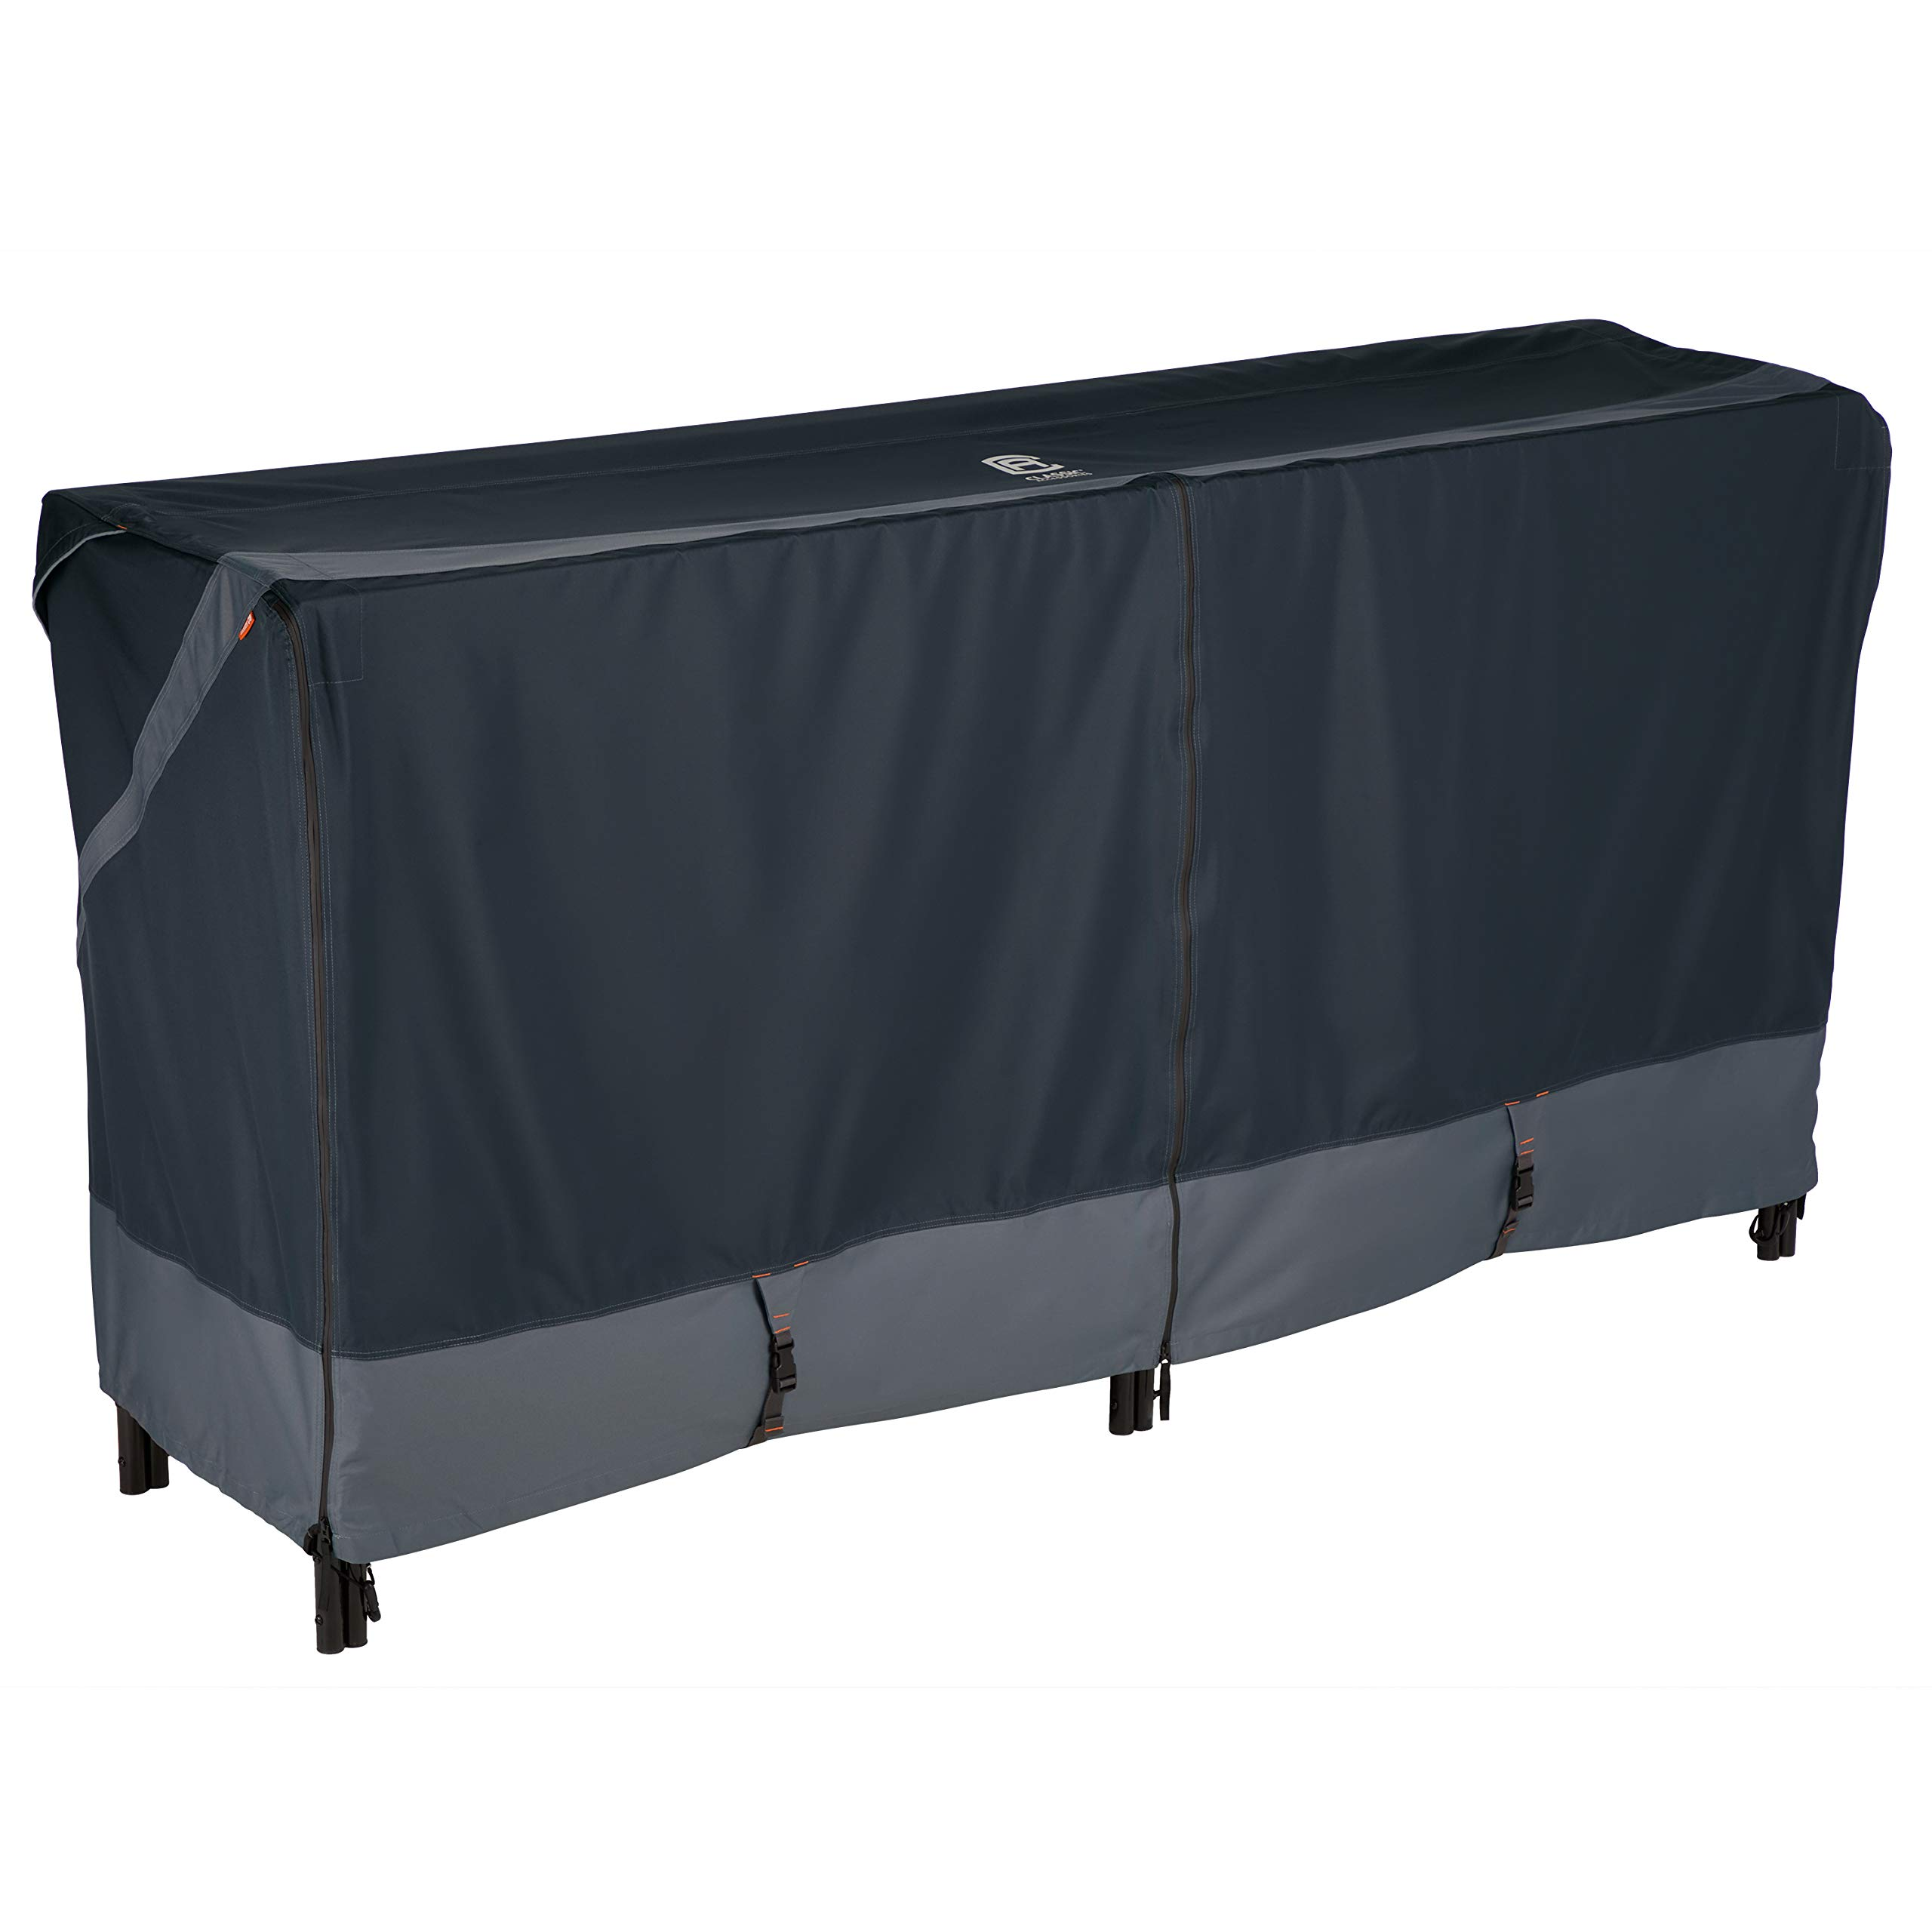 Classic Accessories StormPro RainProof Heavy Duty Log Rack Cover, Large by Classic Accessories